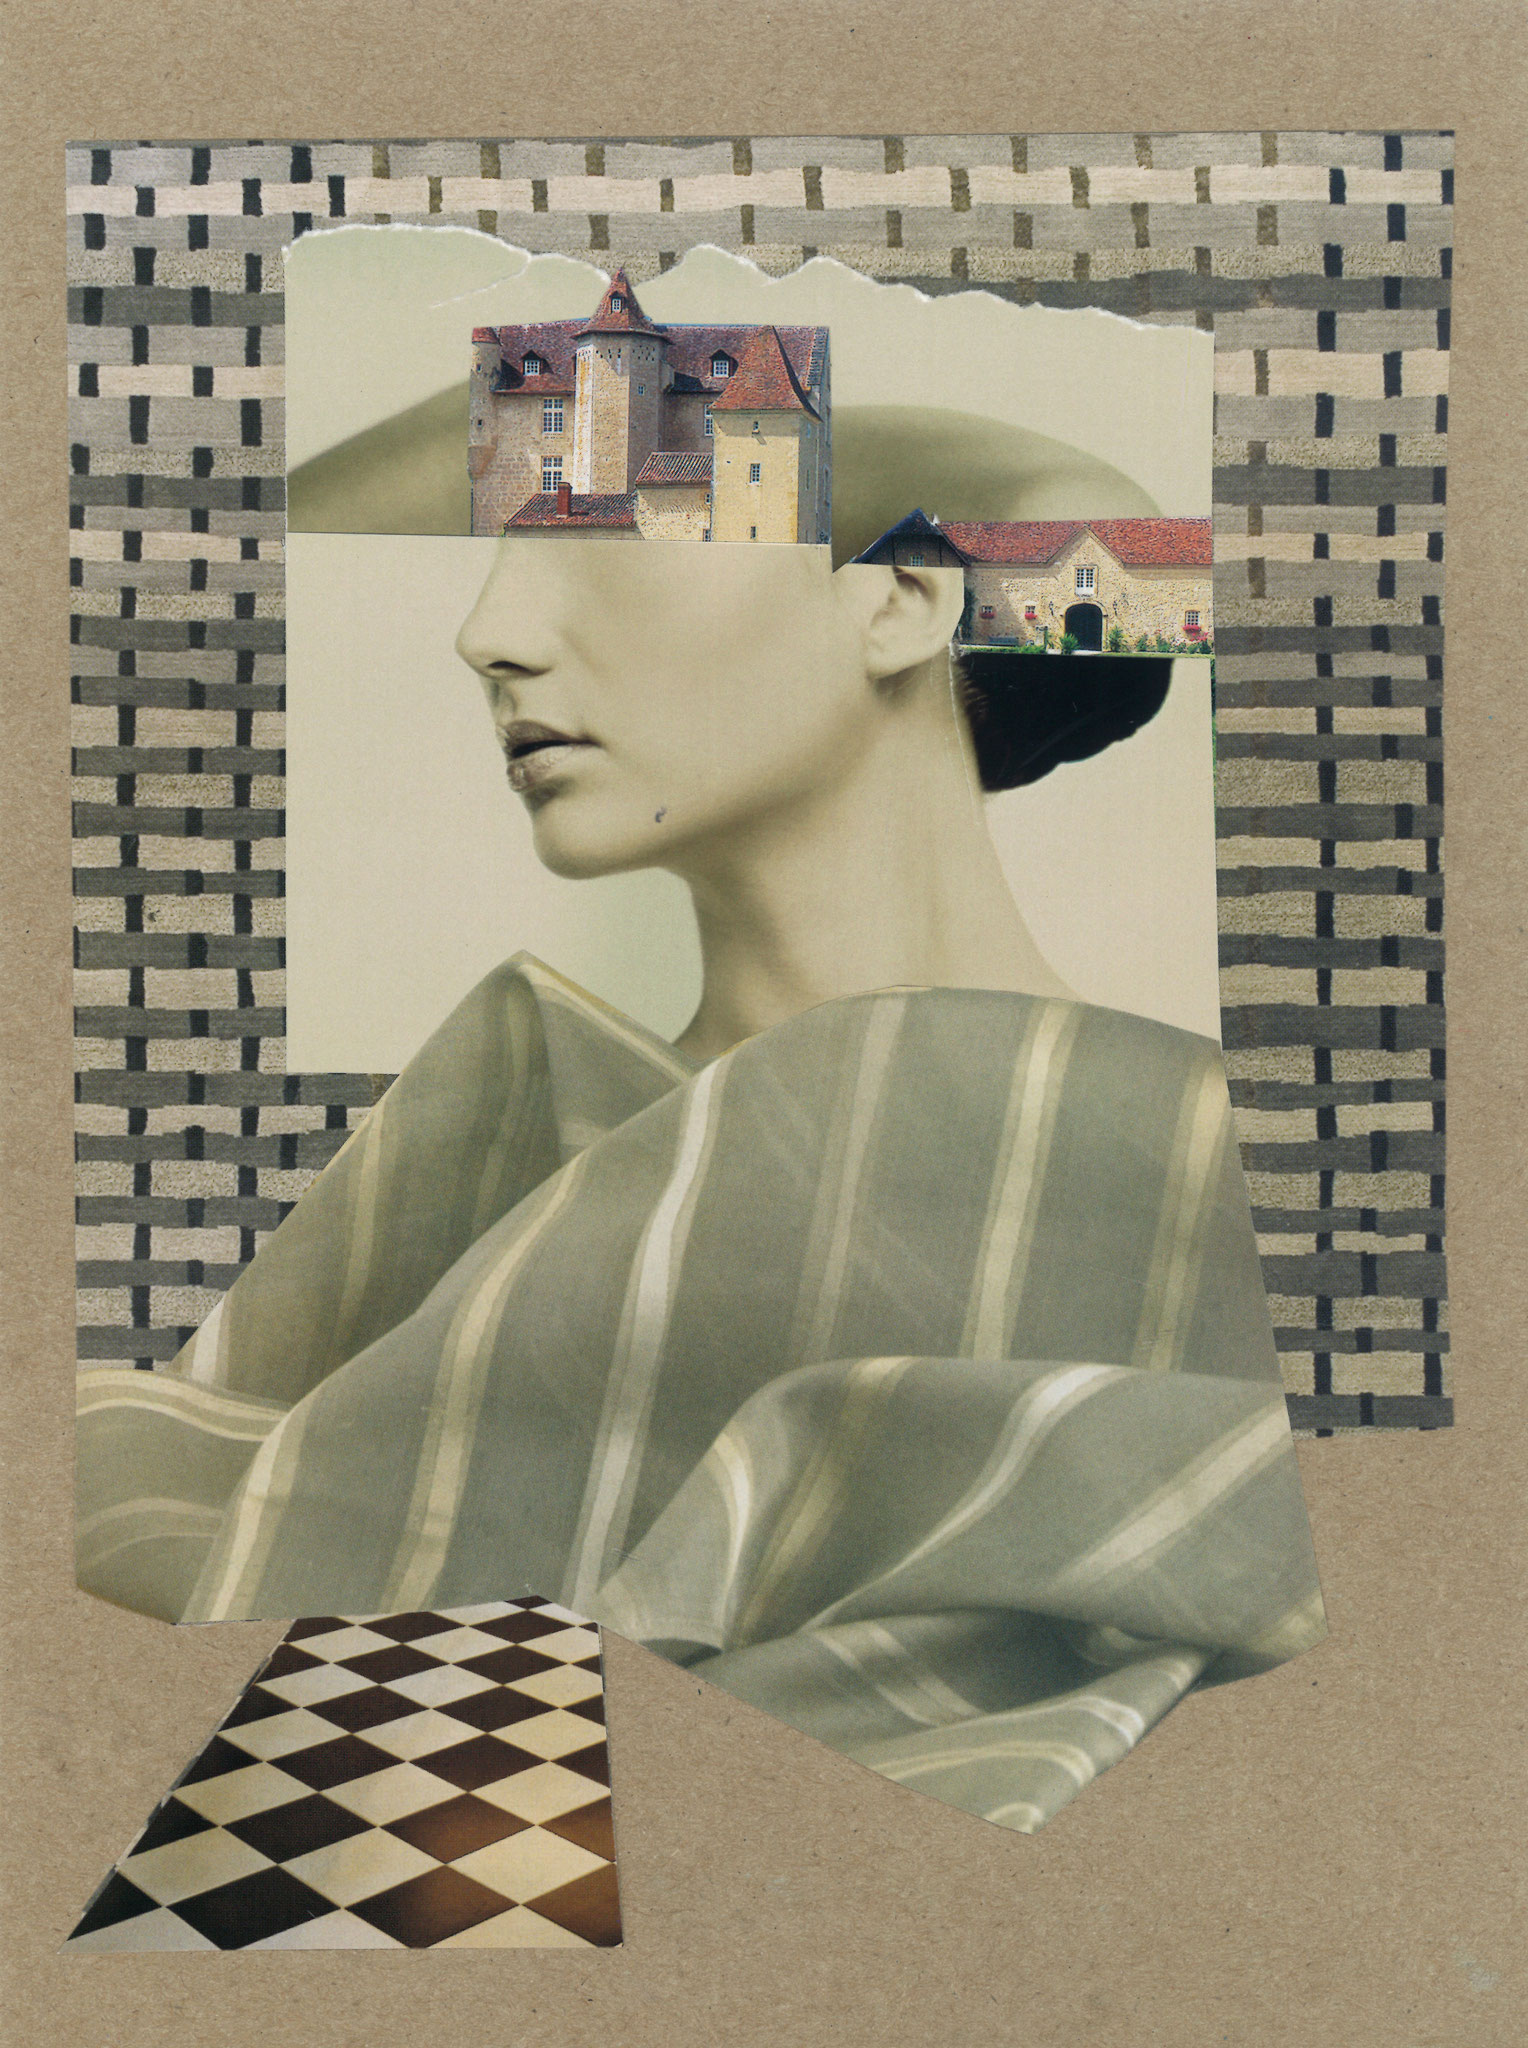 Collage by deborah harris